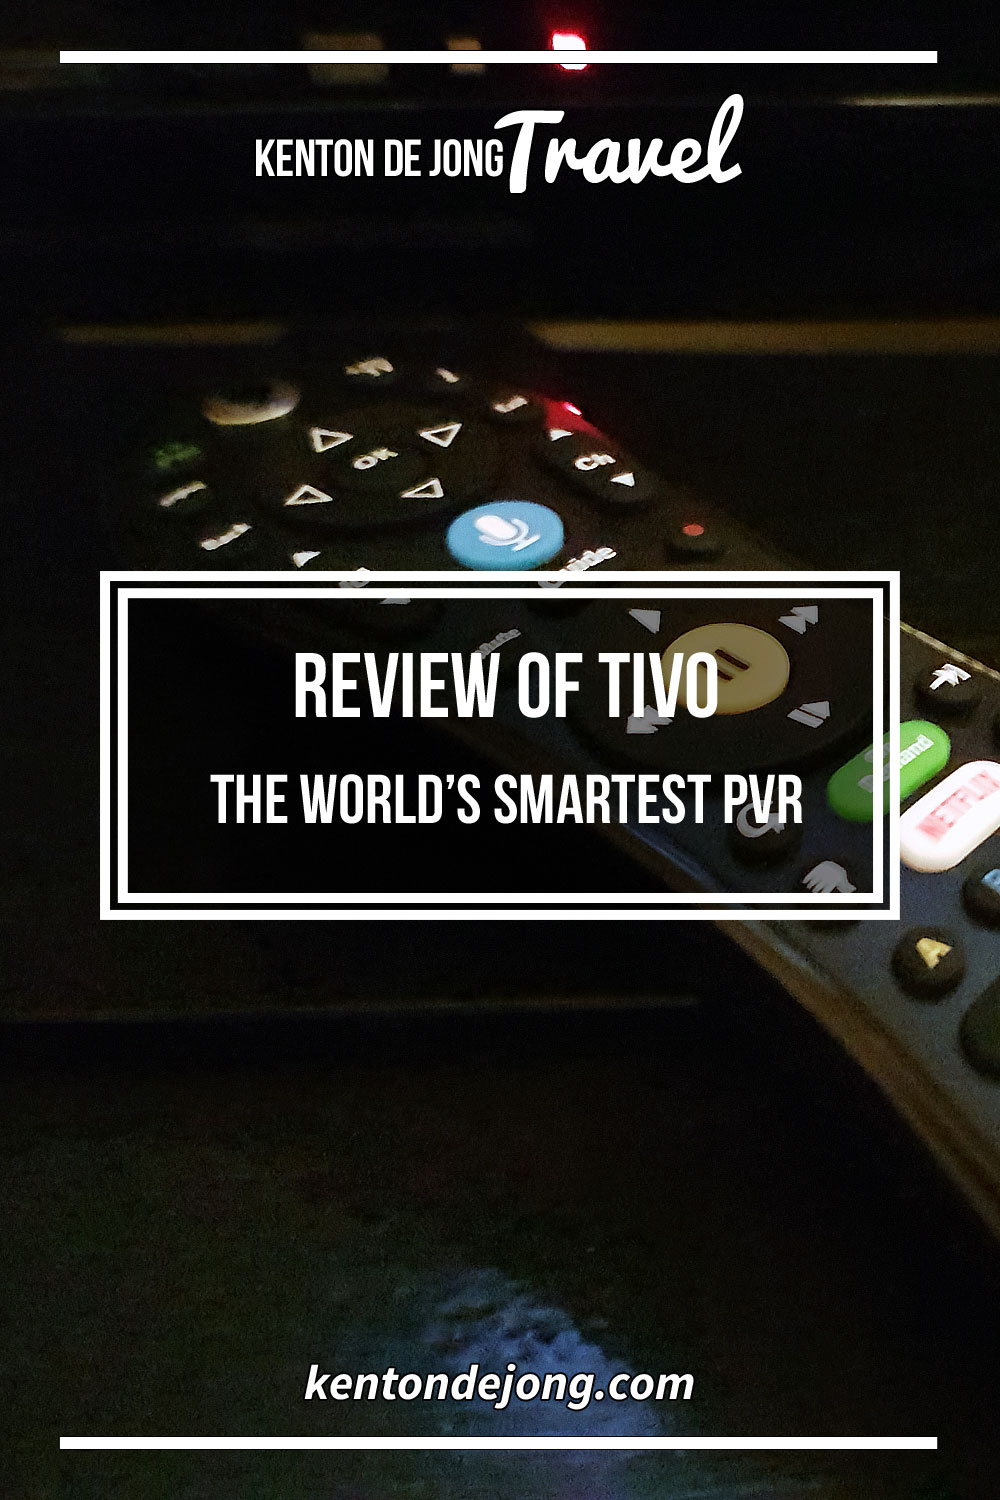 Review of TiVo – The World's Smartest PVR